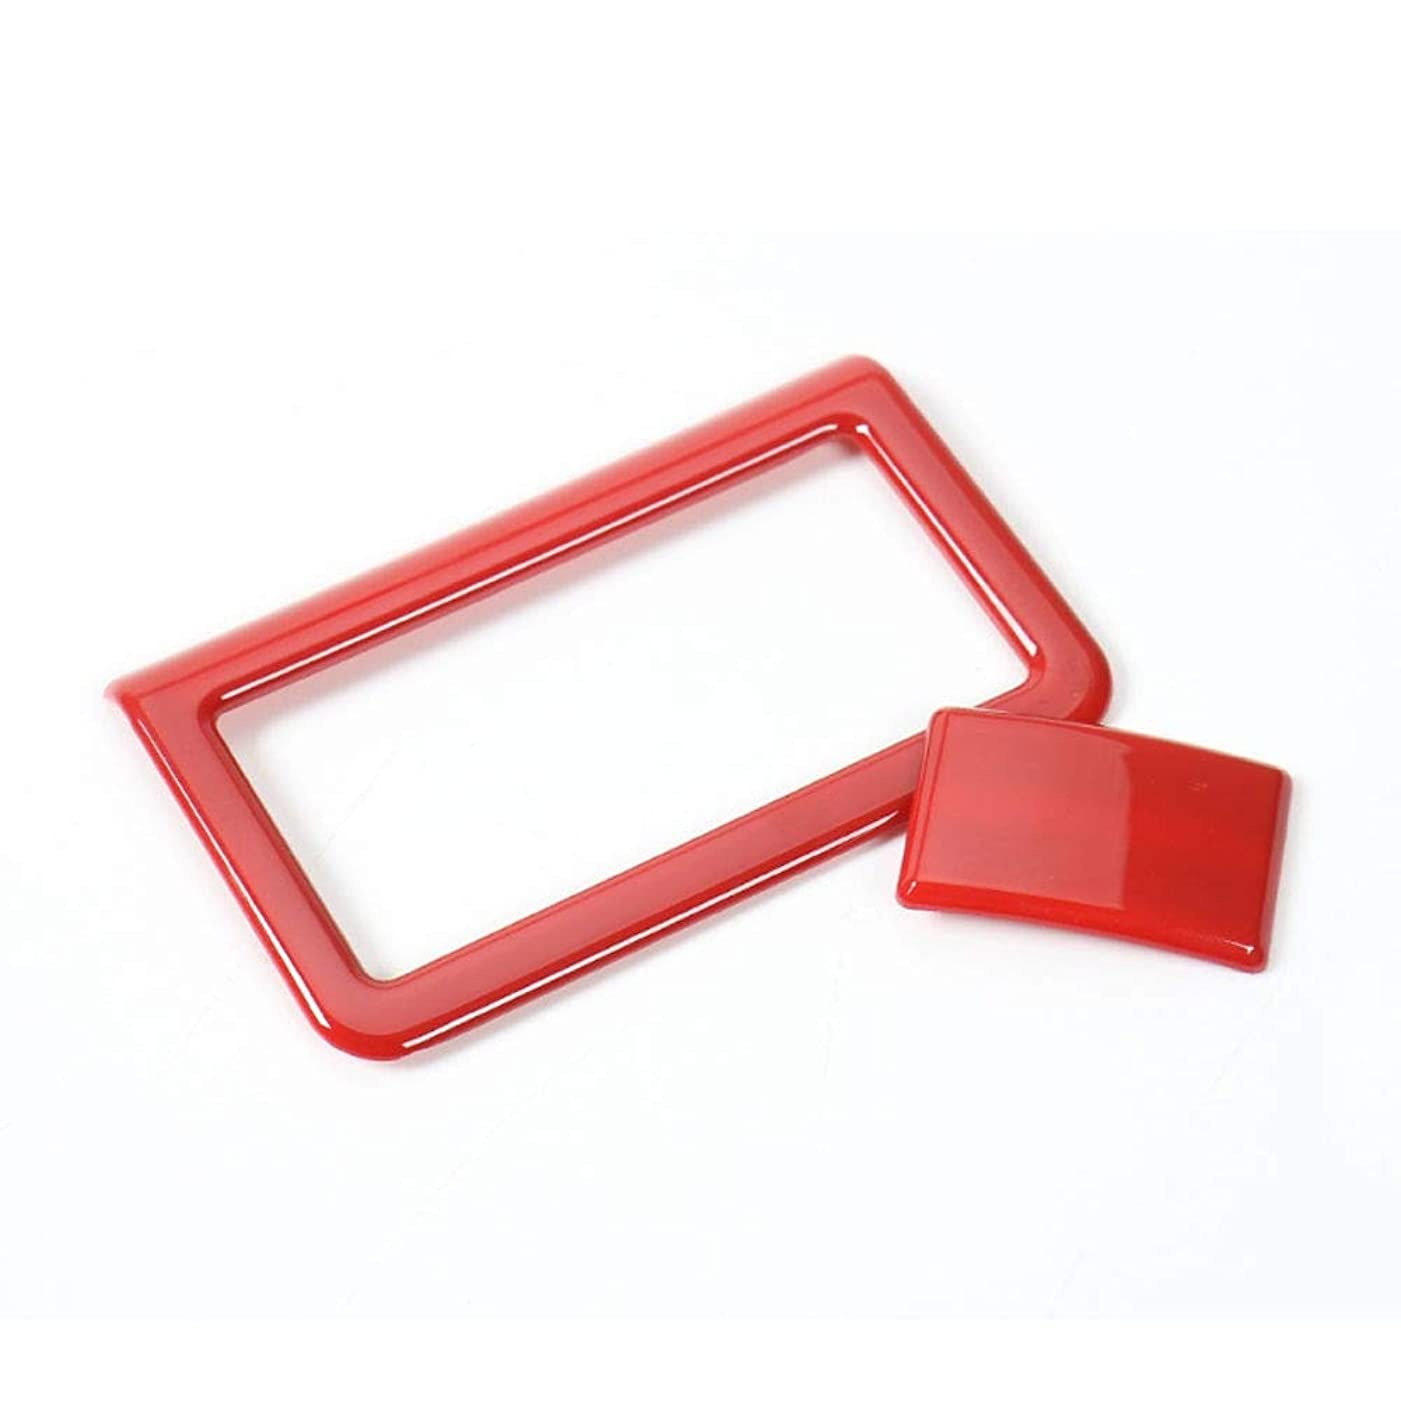 ライター理論的蒸し器Jicorzo - Car-styling Fog Light Lamp Switch Adjust Cover Trim Frame Interior Chrome ABS Stickers For Suzuki Jimny 2007-15 Car Accessories [Red]